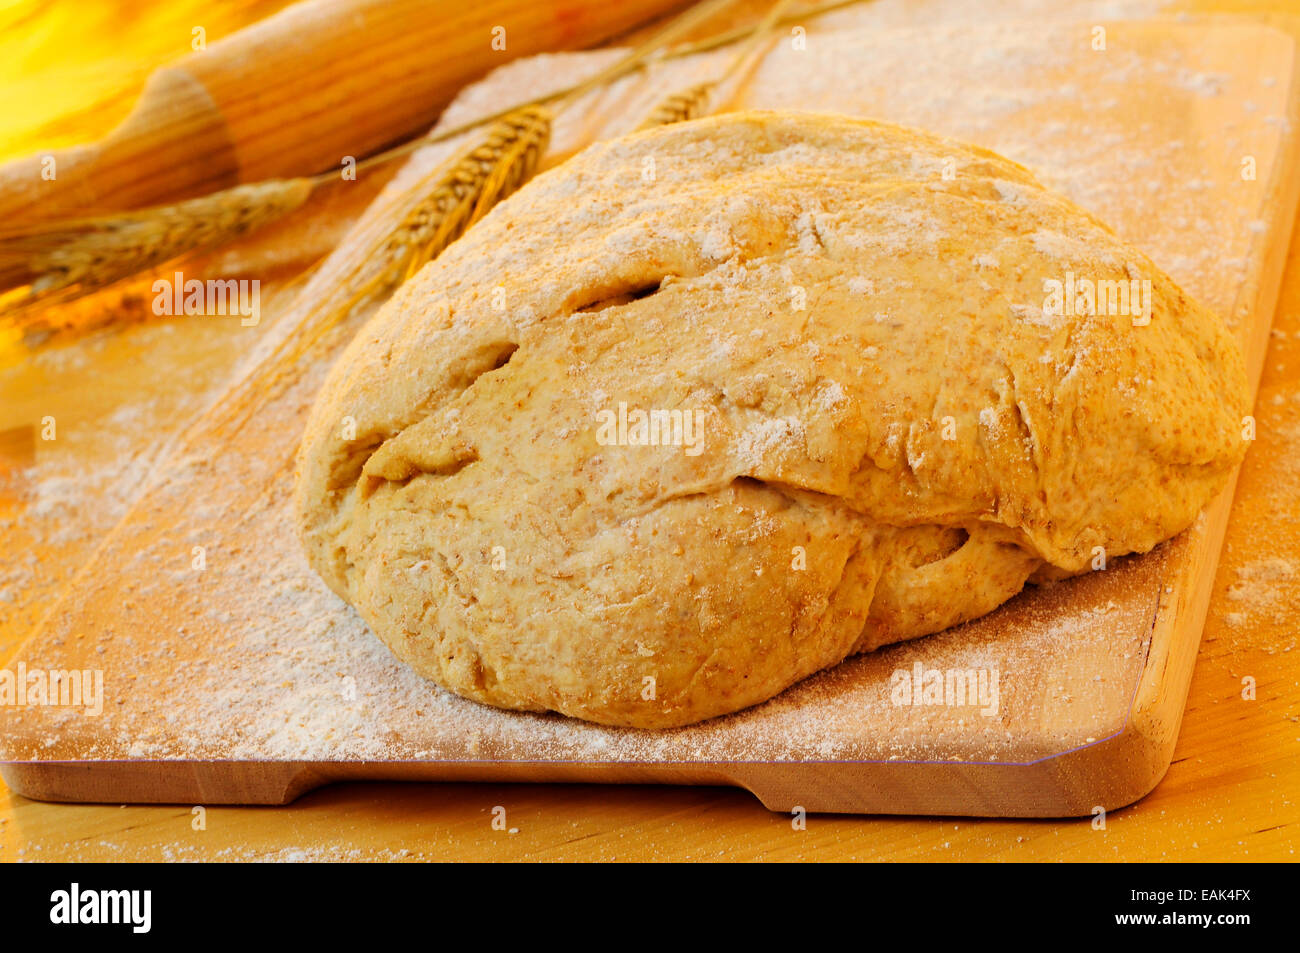 closeup of a homemade dough on a wooden table with some wheat ears and a rolling pin - Stock Image